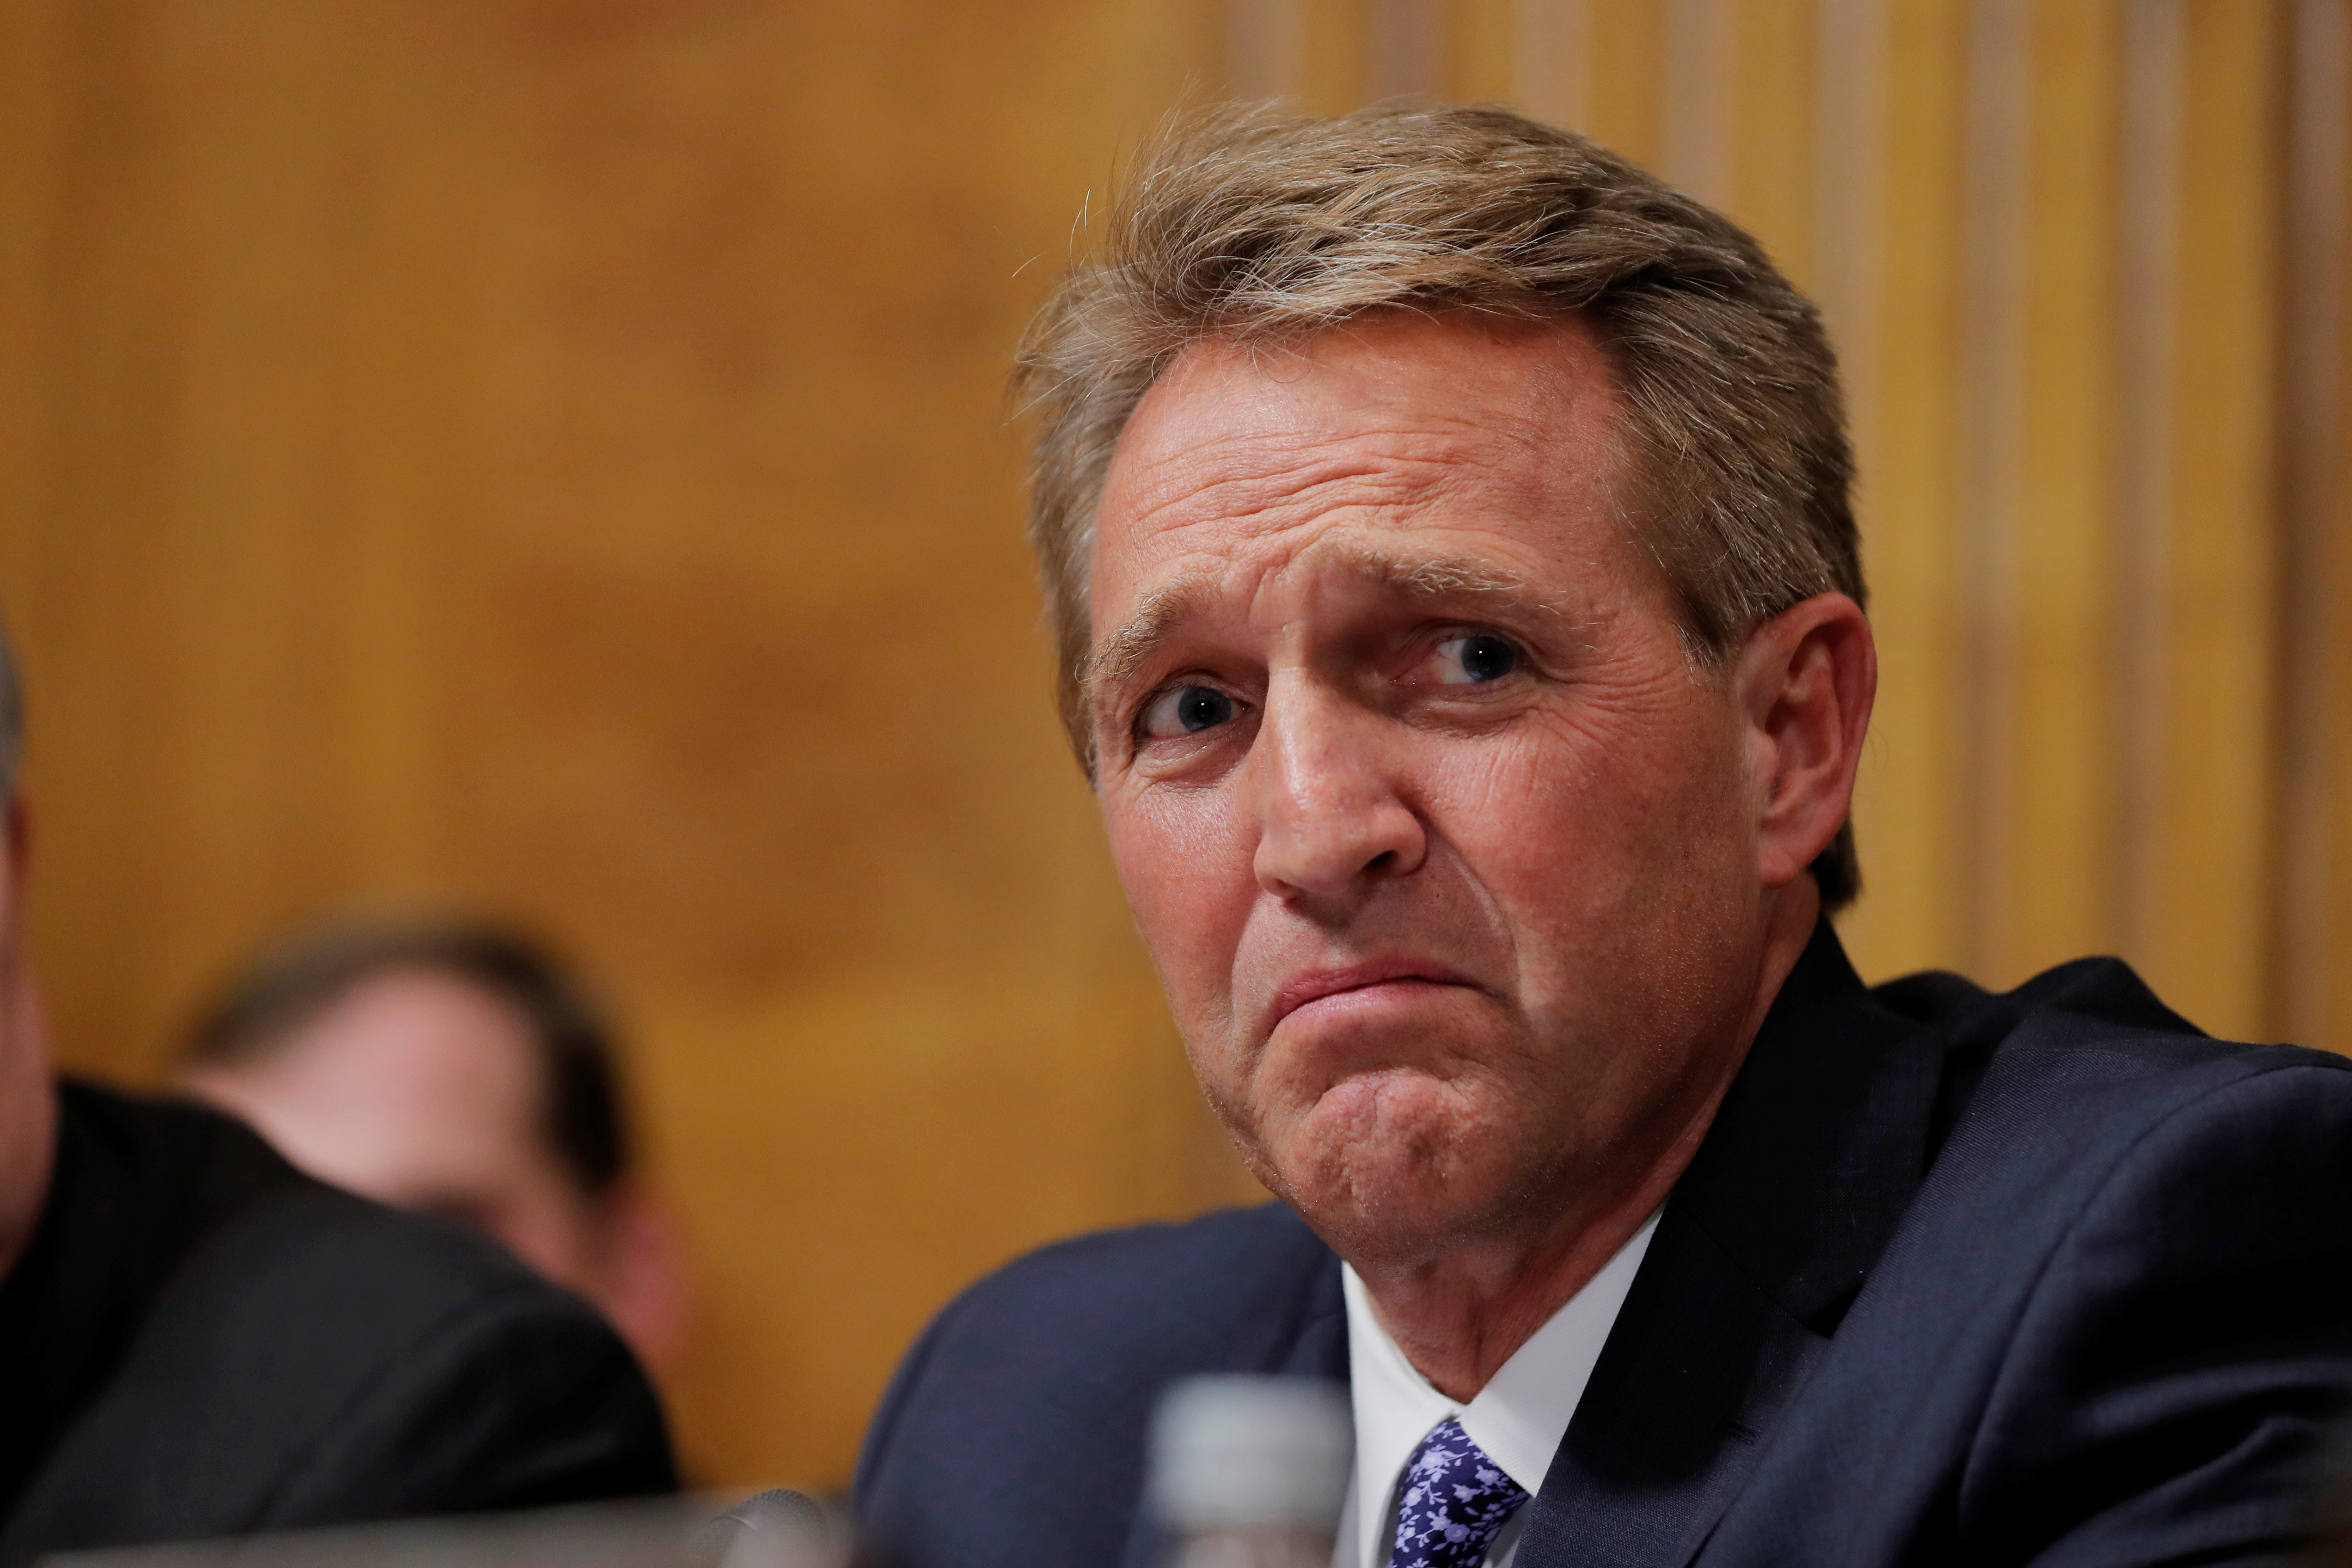 U.S. Senator Jeff Flake (R-AZ) looks on during a Senate Judiciary Committee confirmation hearing for U.S. Supreme Court nominee Brett Kavanaugh on Capitol Hill in Washington, U.S., September 27, 2018. REUTERS/Jim Bourg